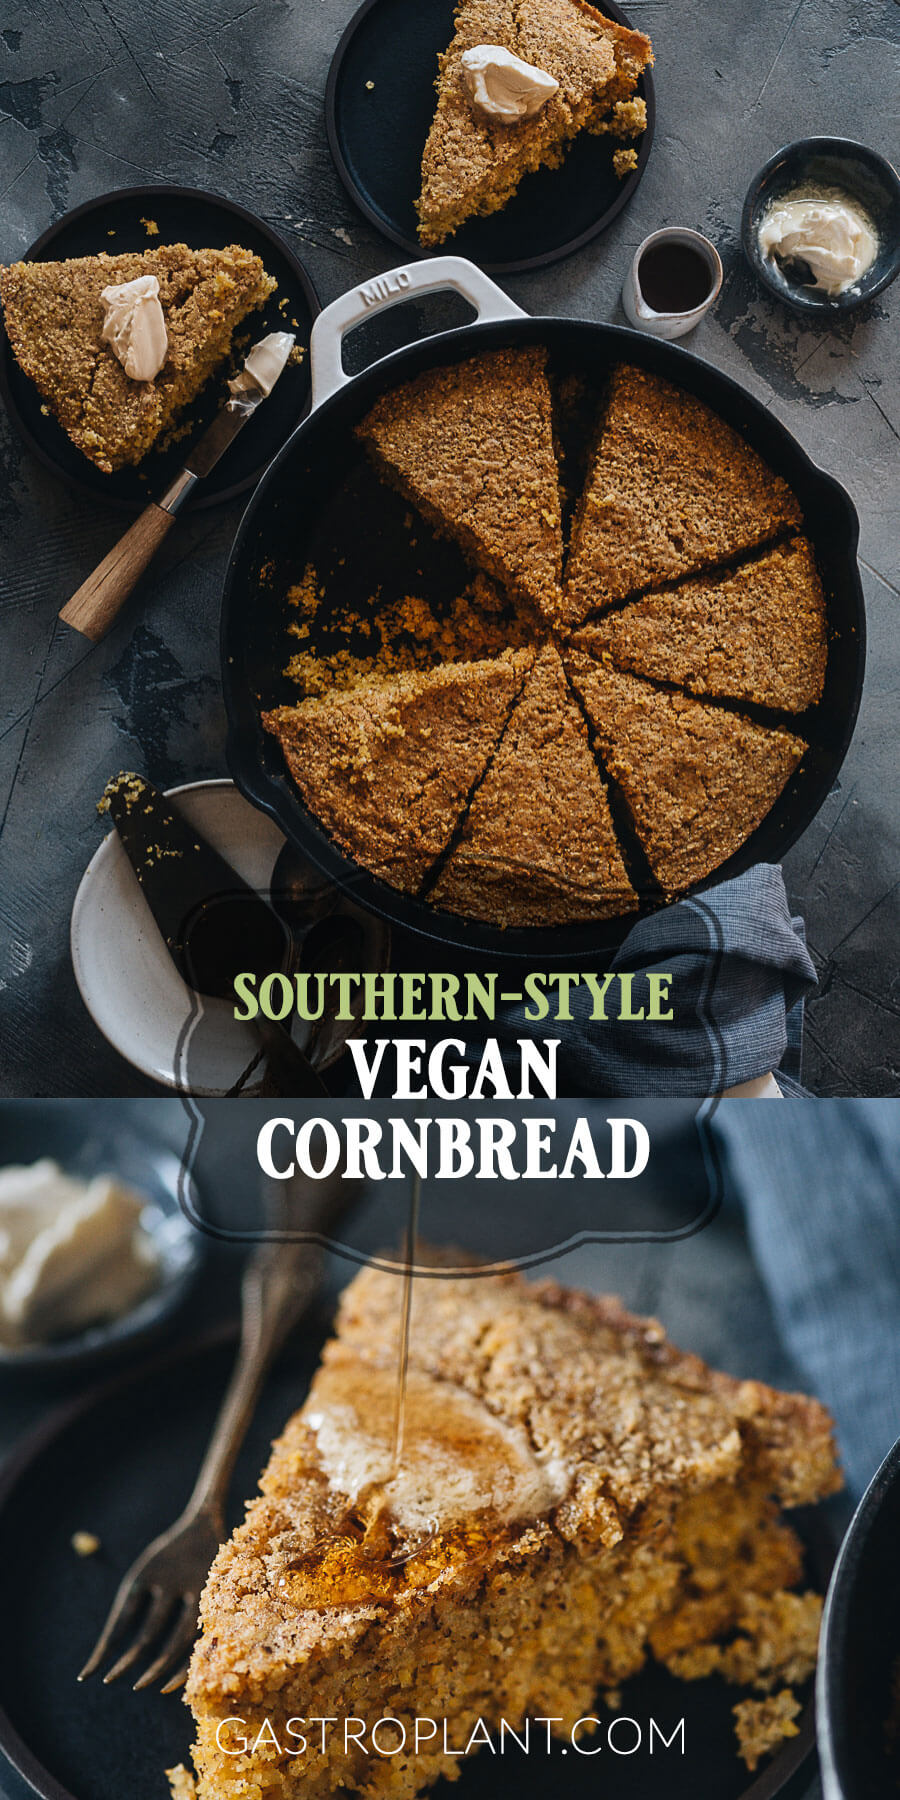 Southern Style Vegan Cornbread collage